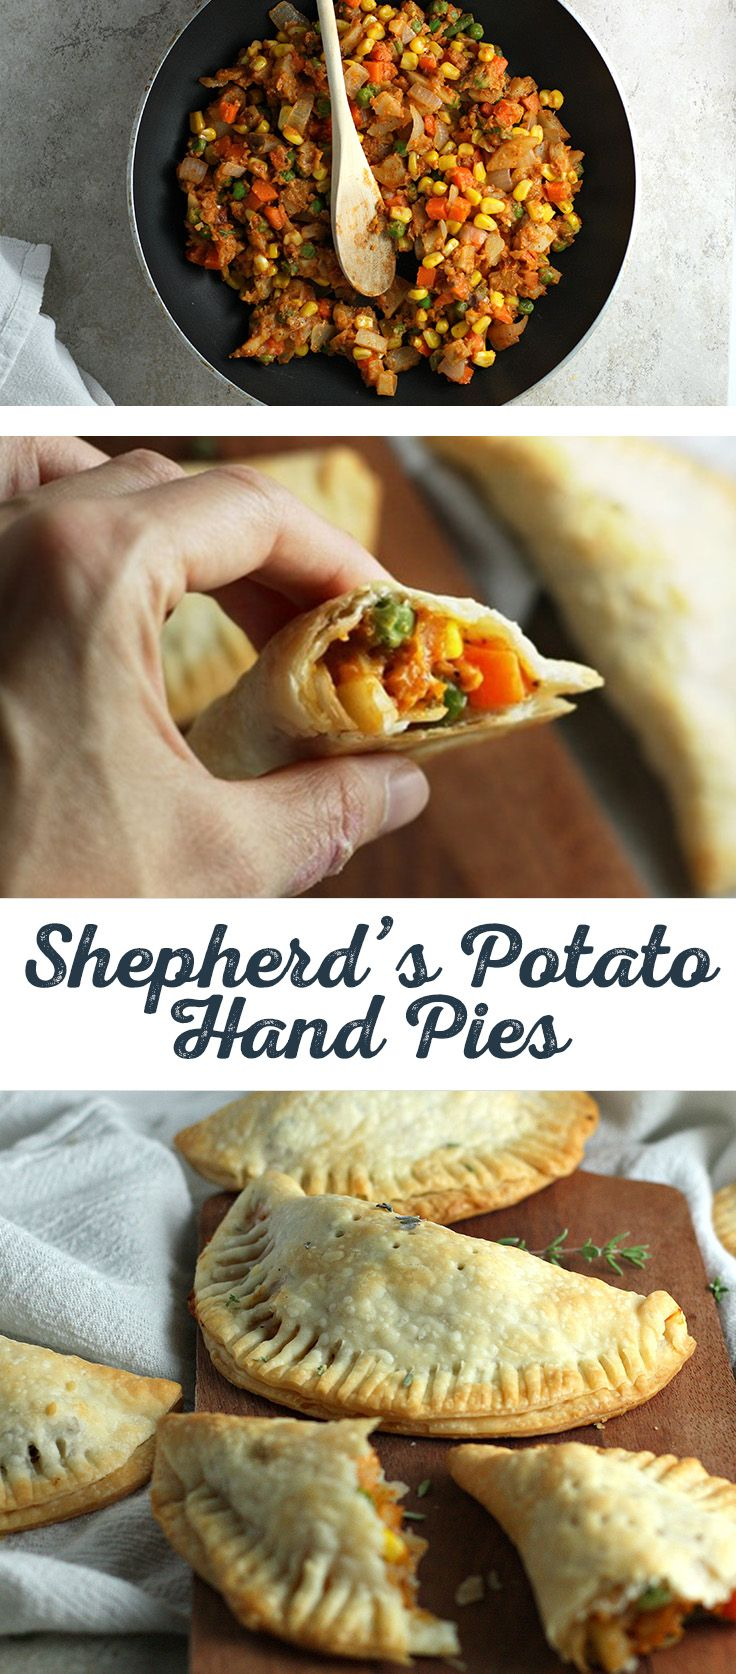 We have to hand it to Nebraska for this handheld interpretation of Shepherd's Pie. They're loaded with hearty potatoes, enveloped in a buttery crust and easy to bang out in 30 minutes. Oh, and don't forget to throw in some corn to represent all the huskers out there.